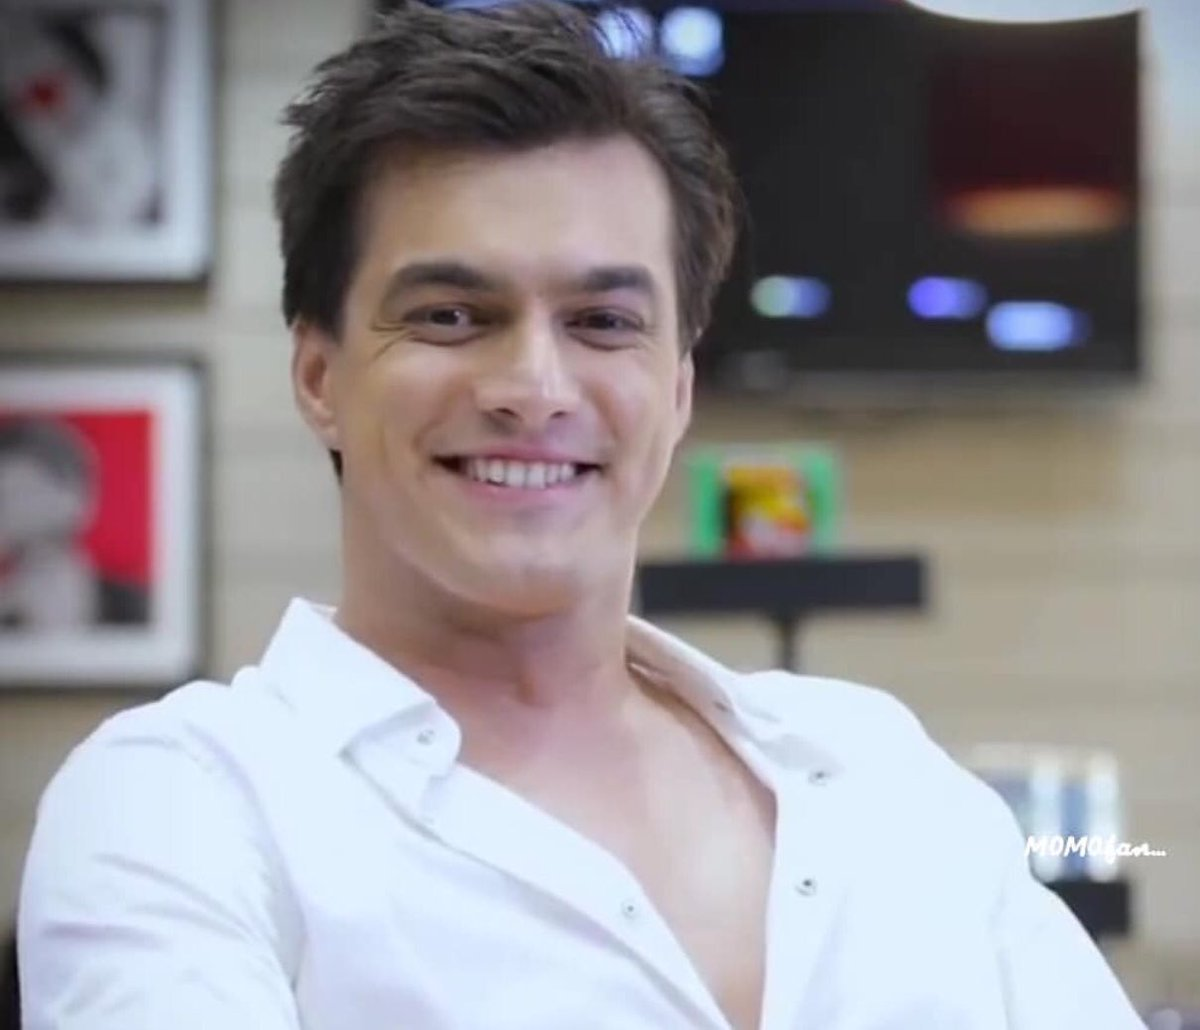 There Are millions of Stars in the Sky but YOU are The BRIGHTEST & MY FAVOURITE forever  Keep Shining & Keep Smiling like this Forever because Shiny Smiley Stars are the BEST   @momo_mohsin #MohsinKhan #KartikGoenka #yrkk <br>http://pic.twitter.com/AFItJxzspZ